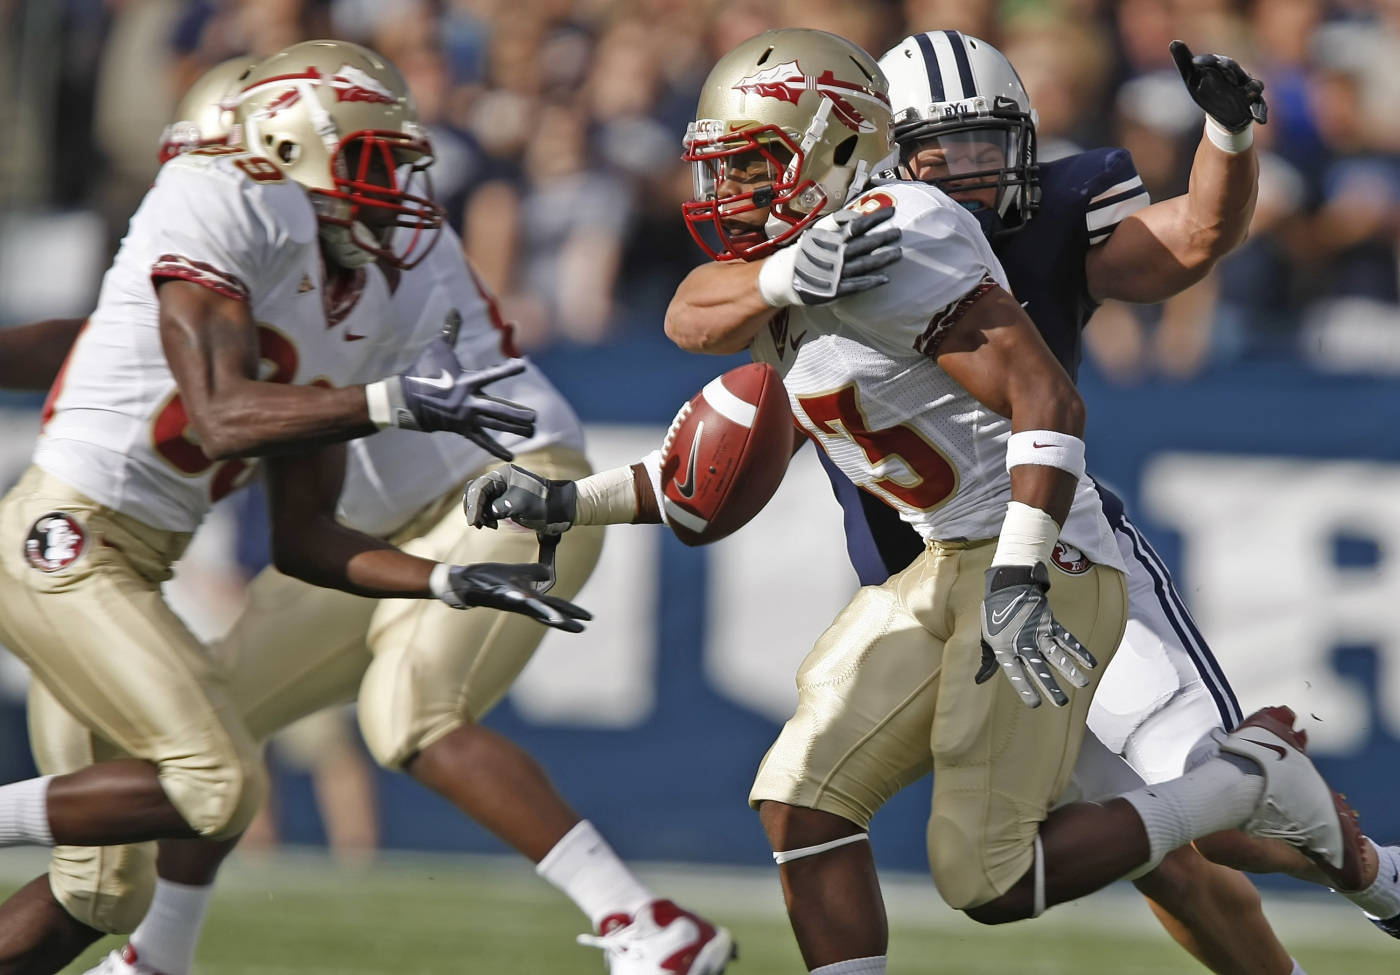 Florida State's Chris Thompson, right, pitches the ball to Louis Givens before being tackled by BYU's Jordan Pendleton during a NCAA football game at LaVell Edwards Stadium in Provo, Utah, Saturday, Sept. 19, 2009. (AP Photo/George Frey)